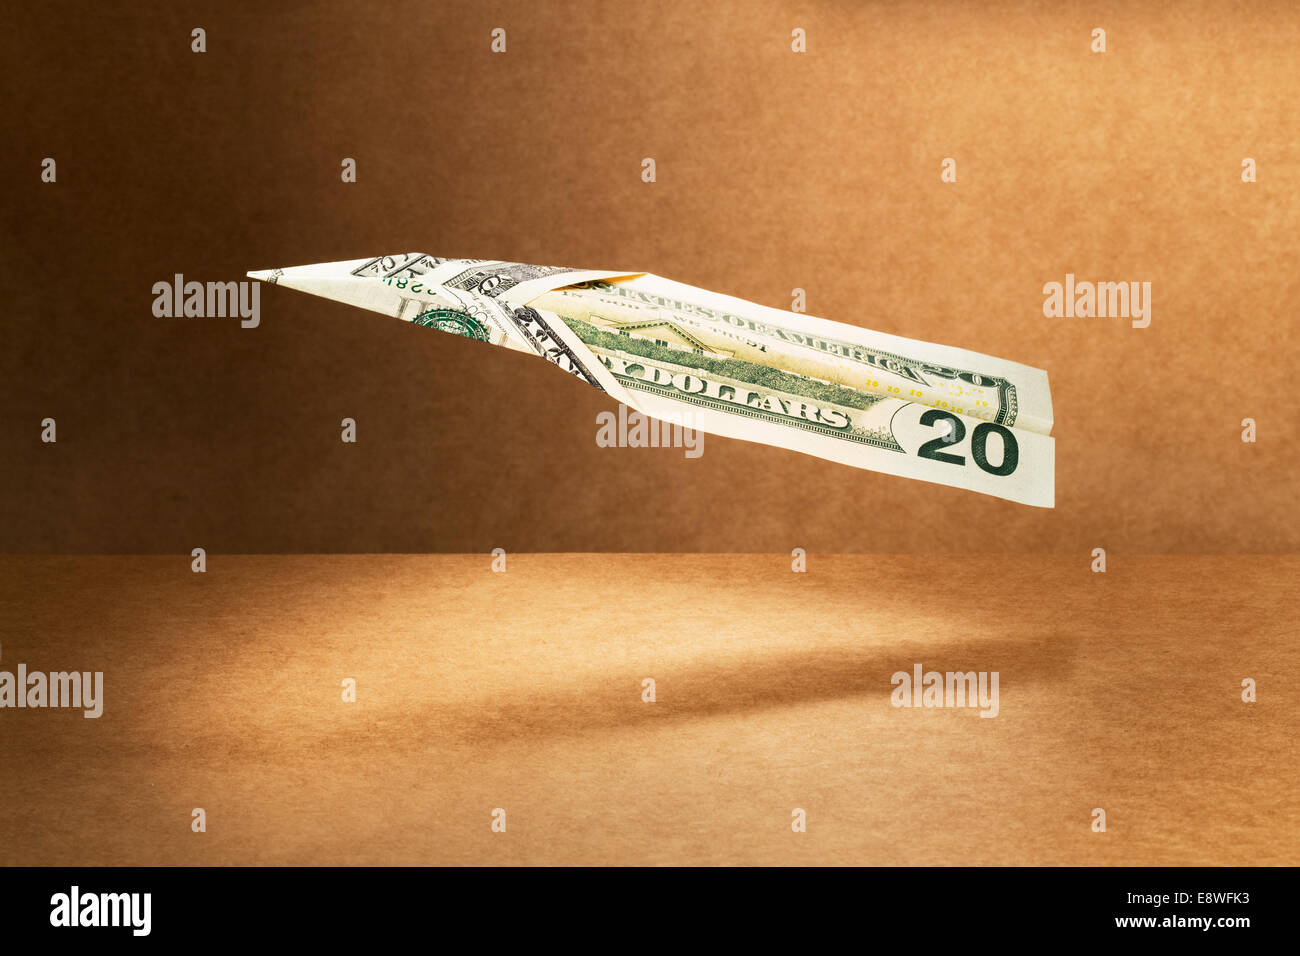 20 dollar bill folded into paper airplane - Stock Image